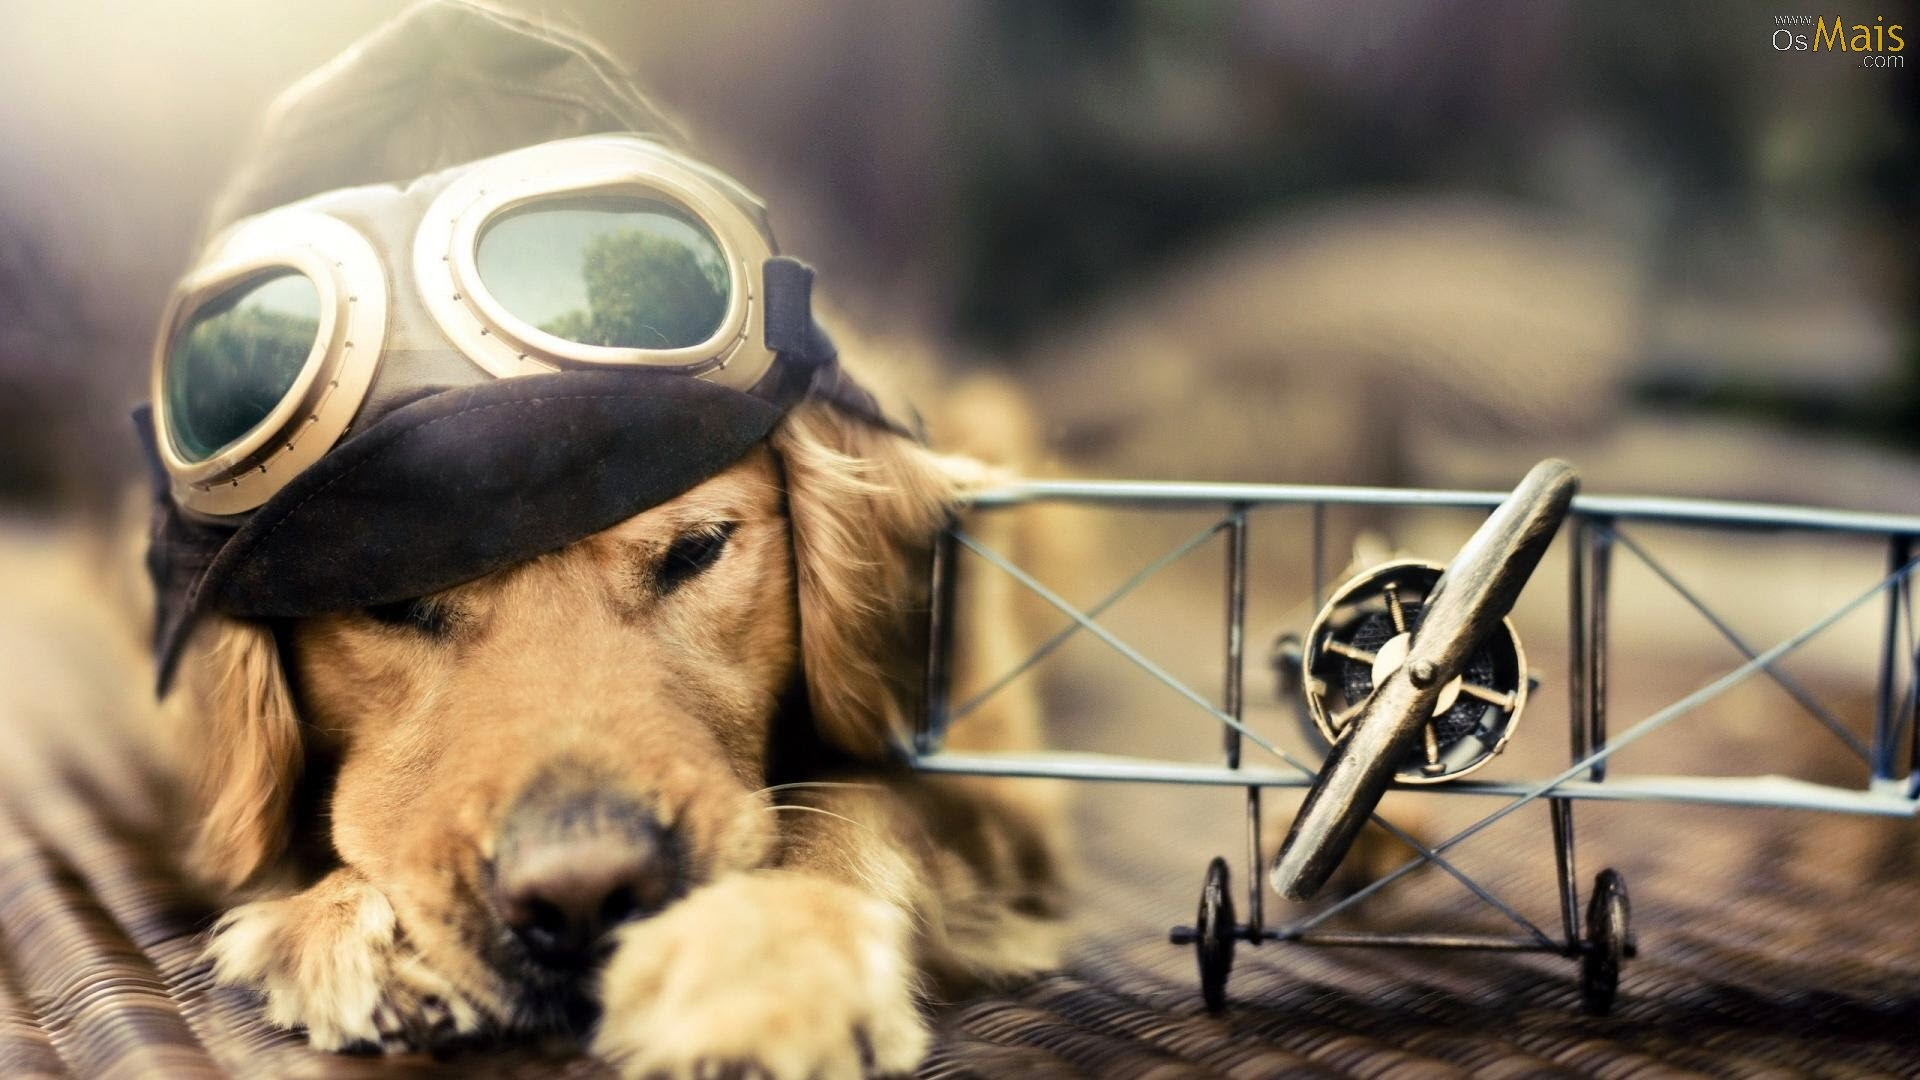 Aviator Dog   Doge Wallpaper 1920x1080 70309 1920x1080